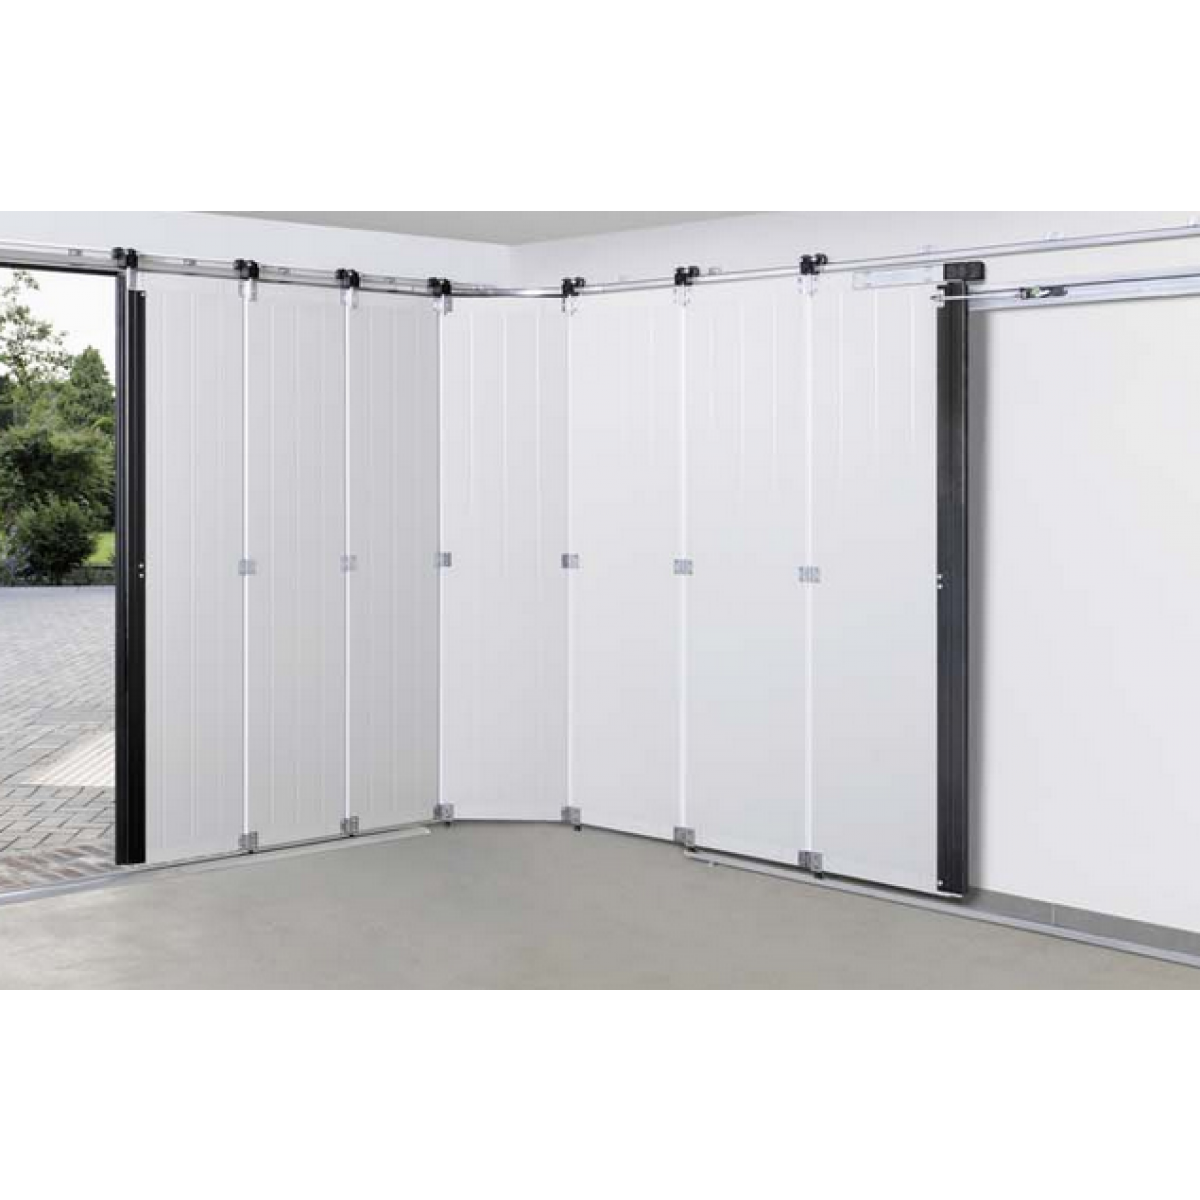 Porte lat rale de garage hst hormann portes de parking for Detecteur porte de garage